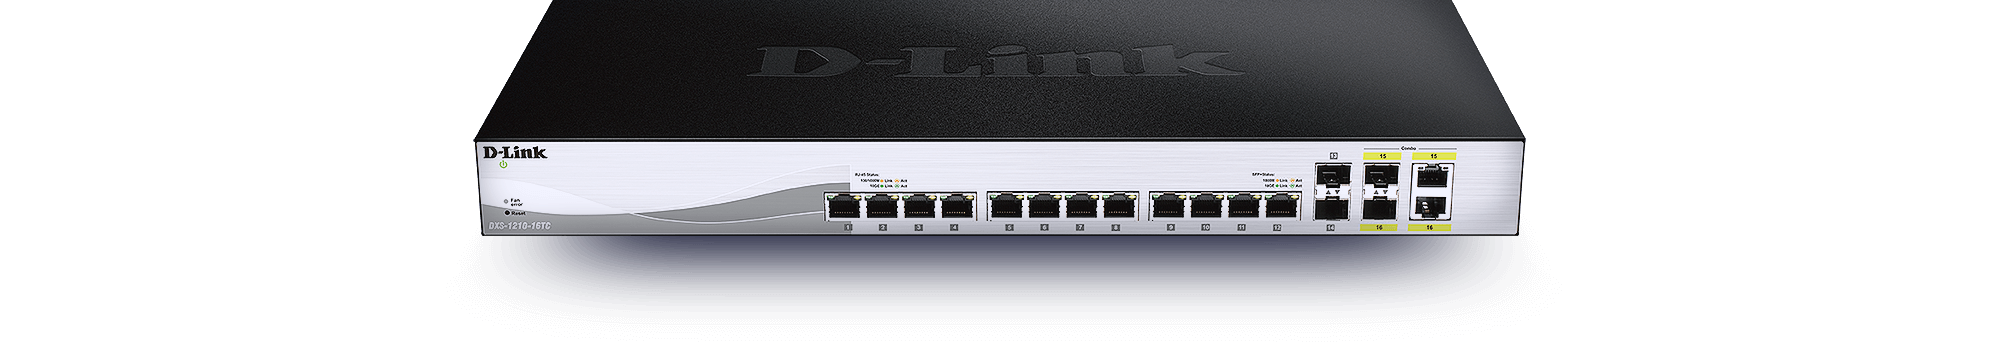 DXS-1210 series switch